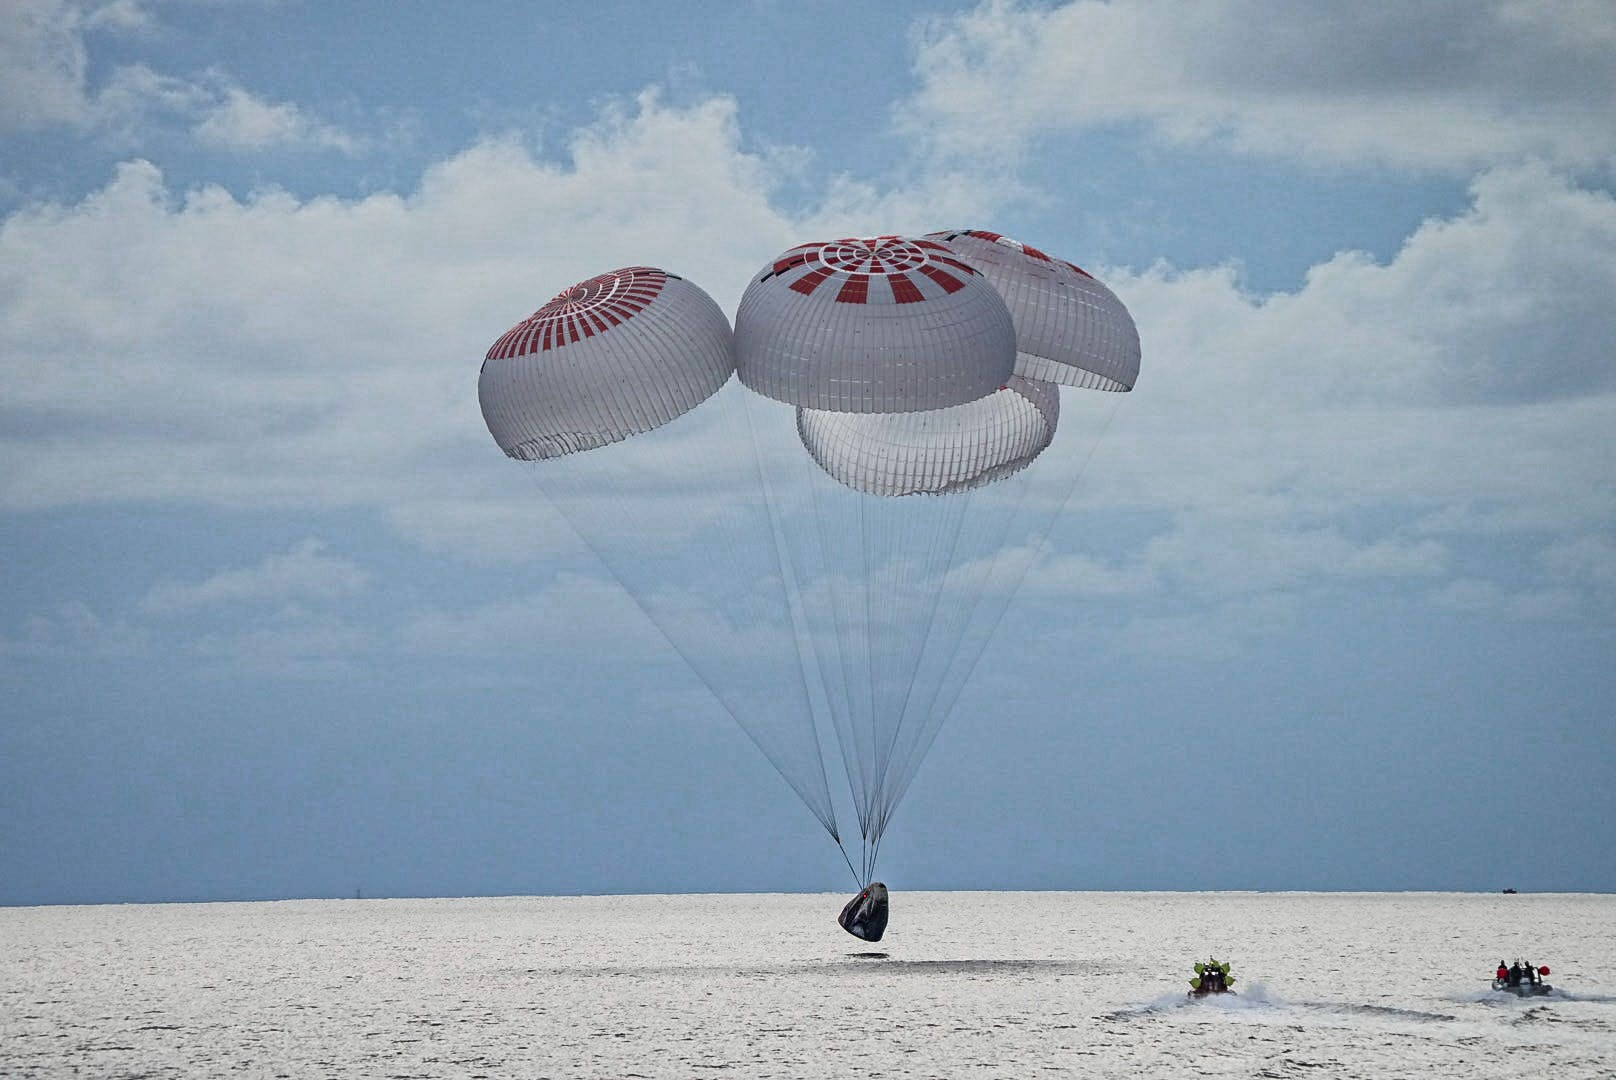 SpaceX's private Inspiration4 crew returns to Earth with historic splashdown off Florida coast